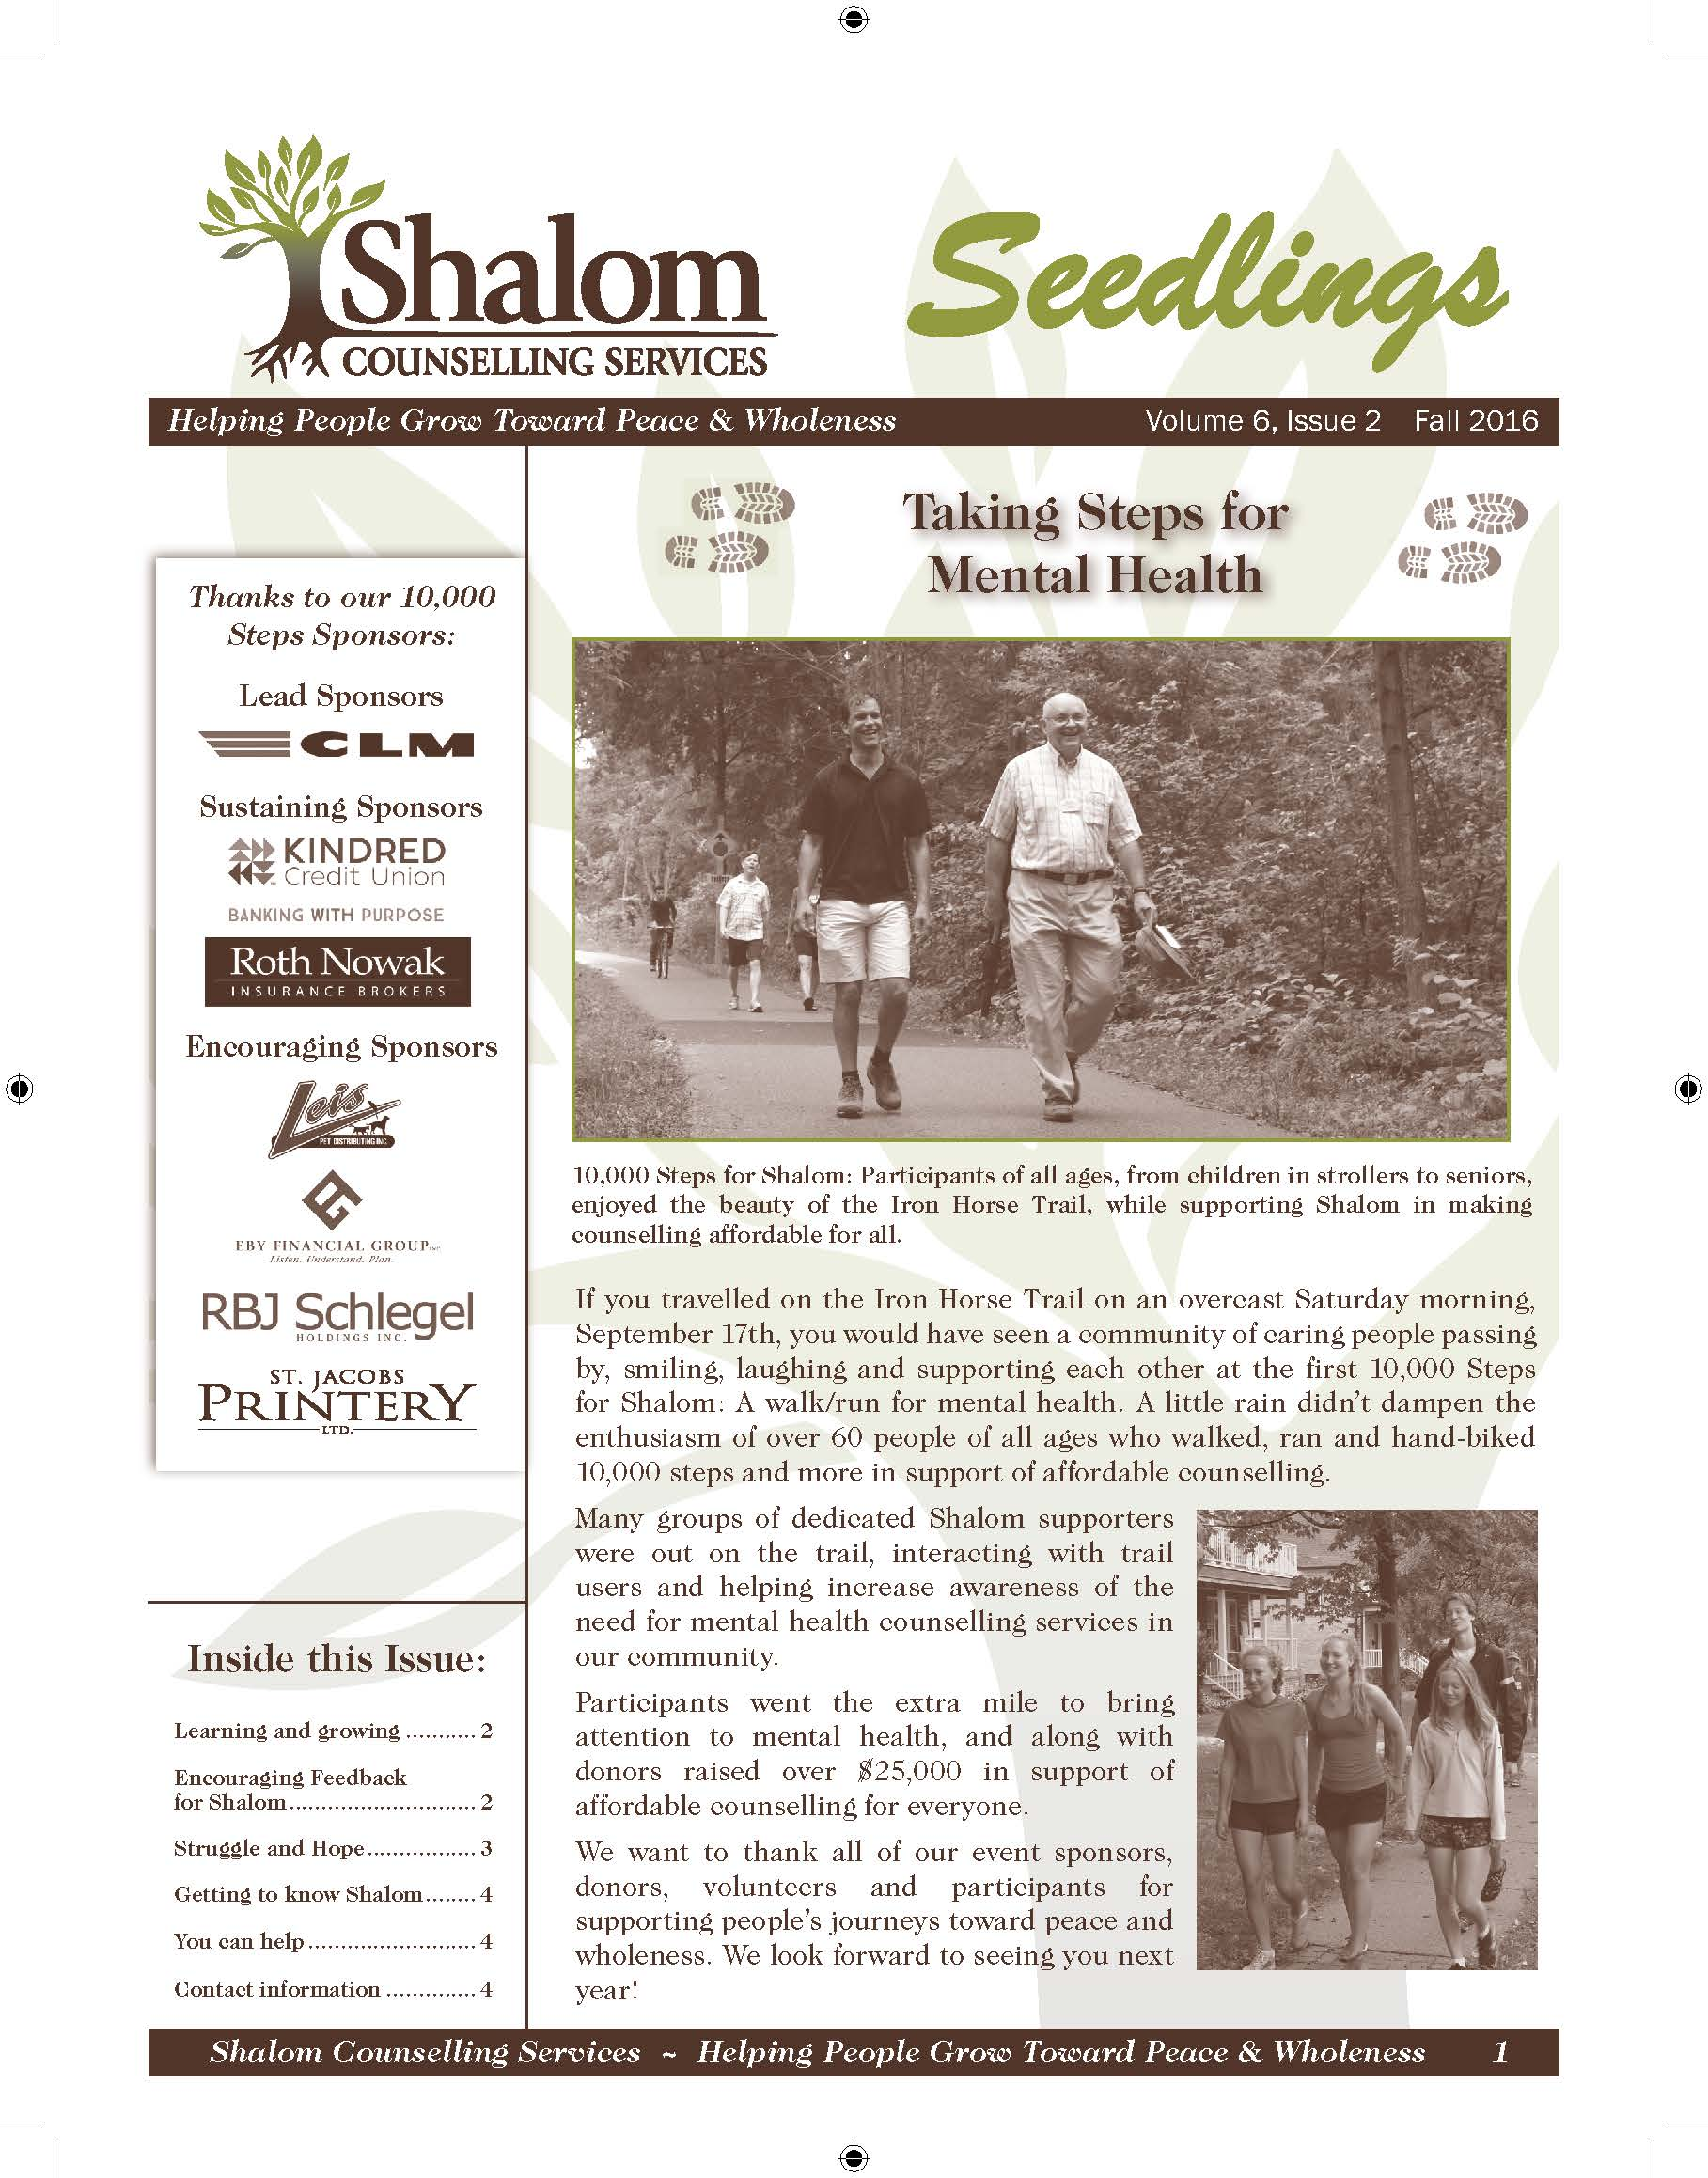 Fall 2016 Seedlings Newsletter